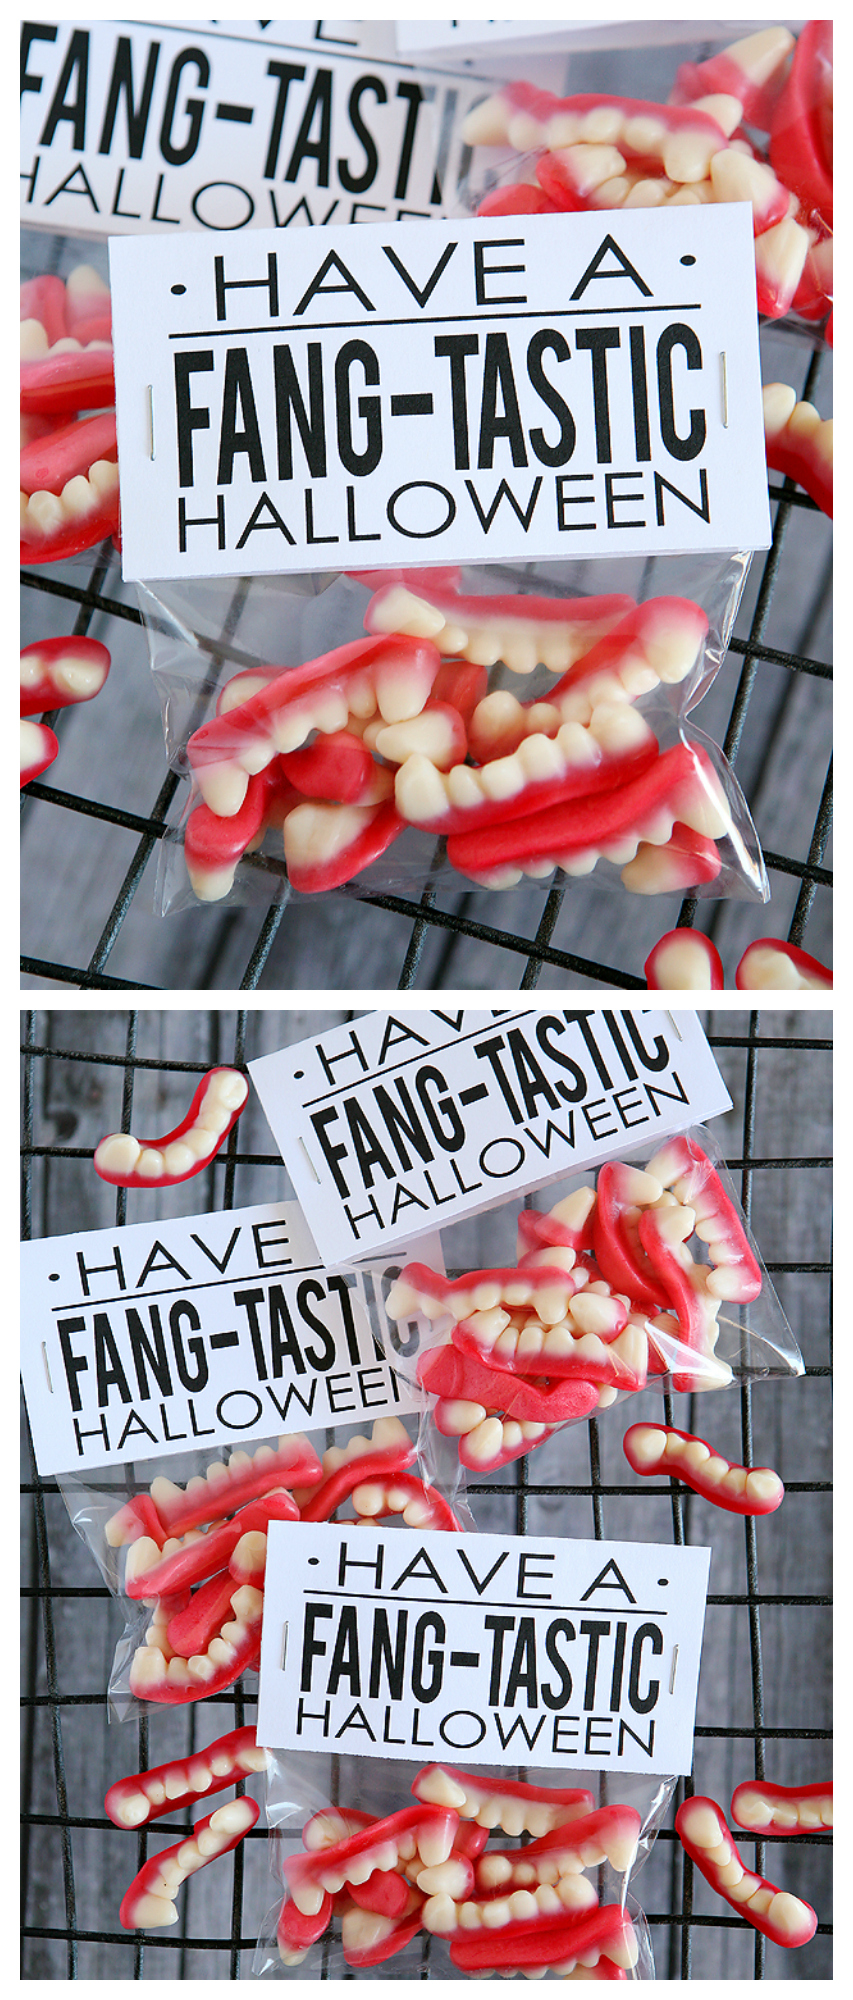 Have a Fang-tastic Halloween | Free halloween printables!